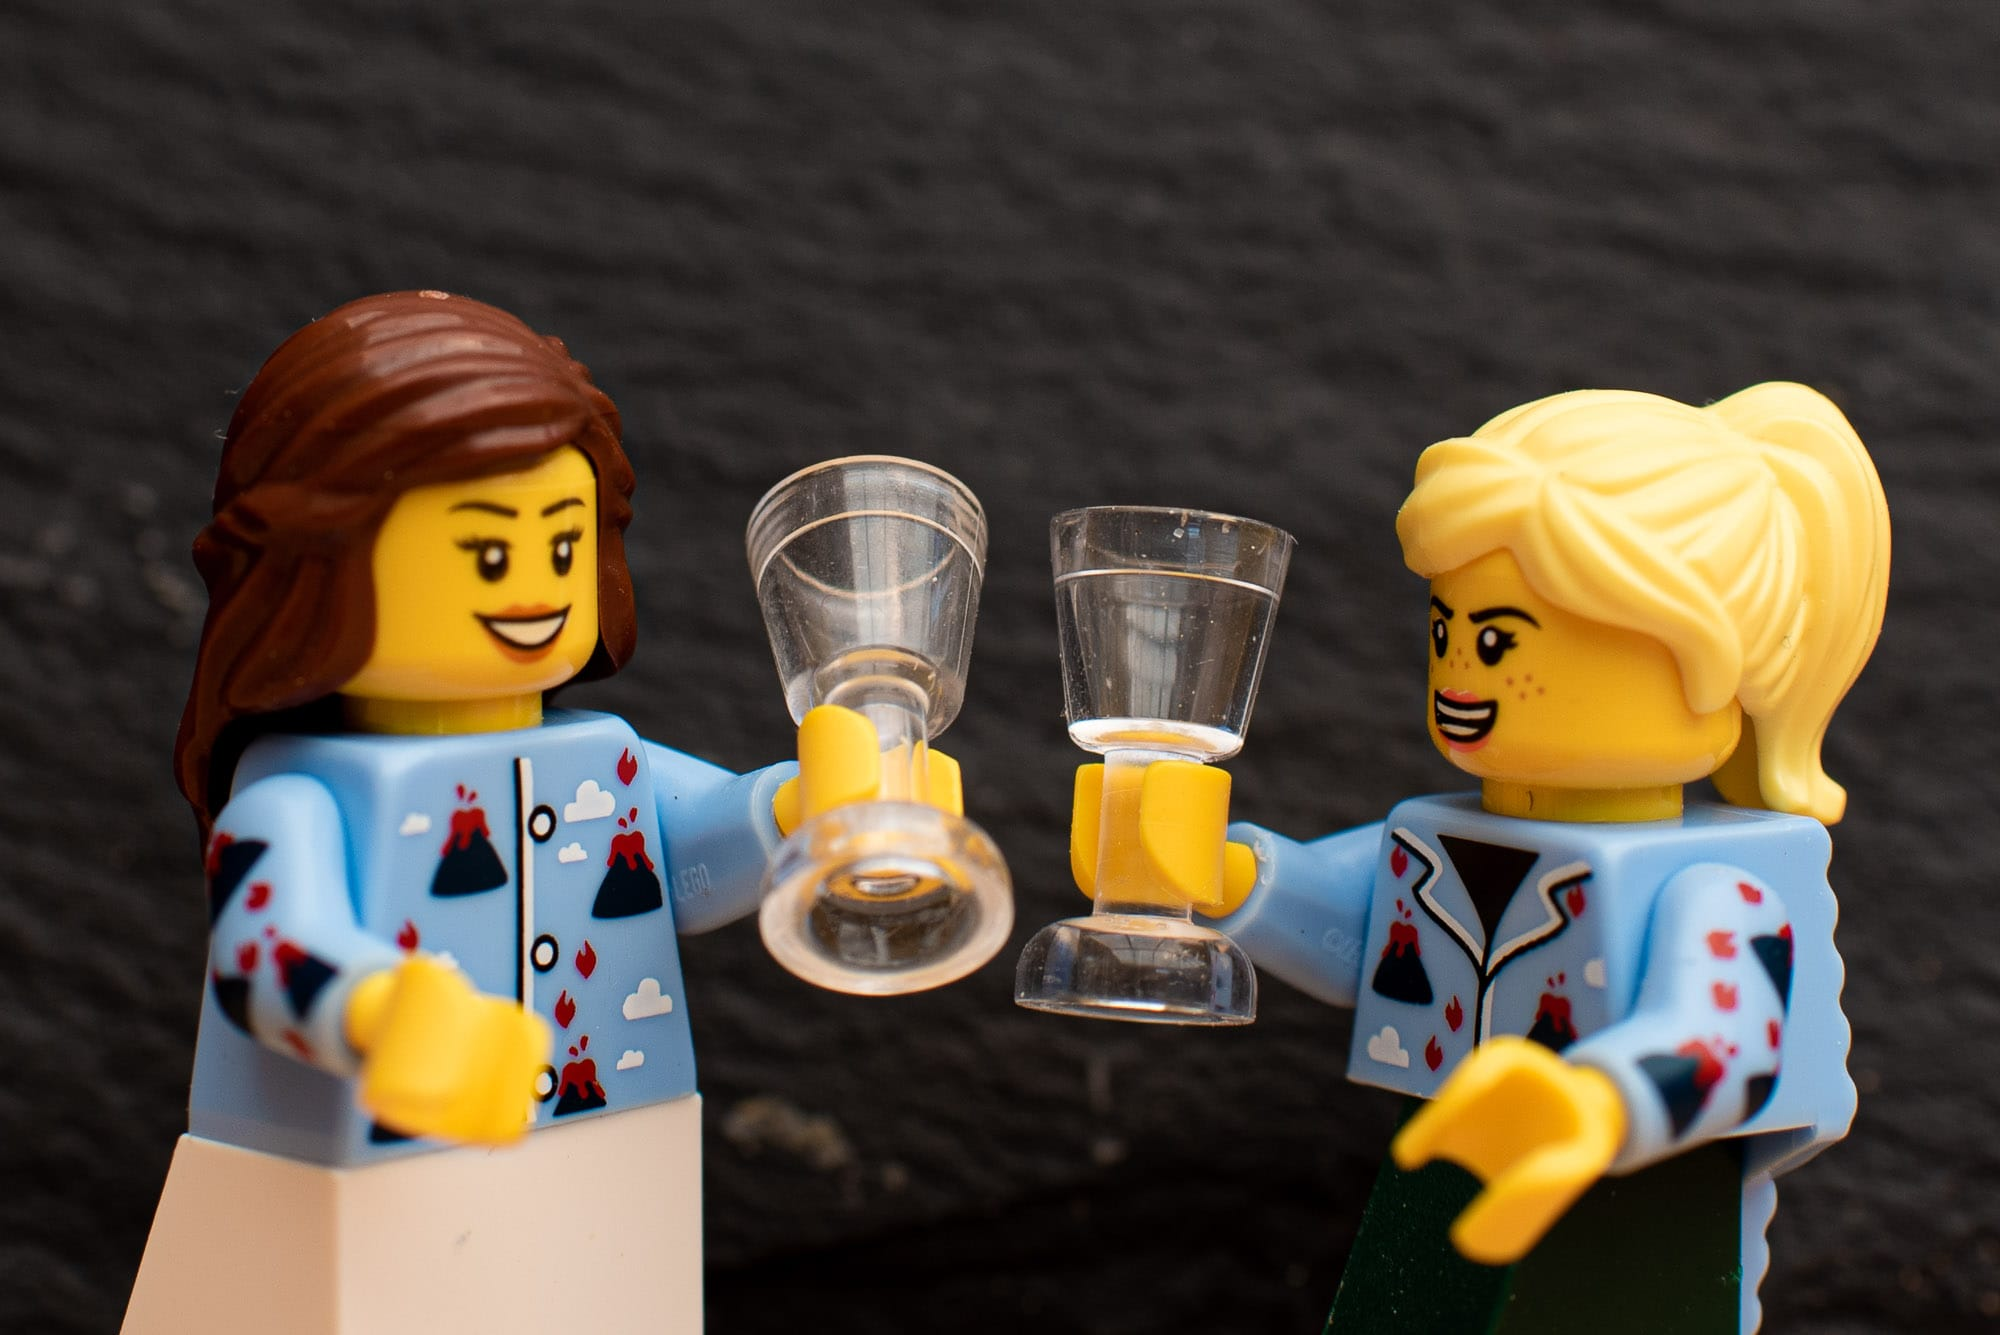 Lego Bride & Bridesmaid enjoy a glass of fizz together.